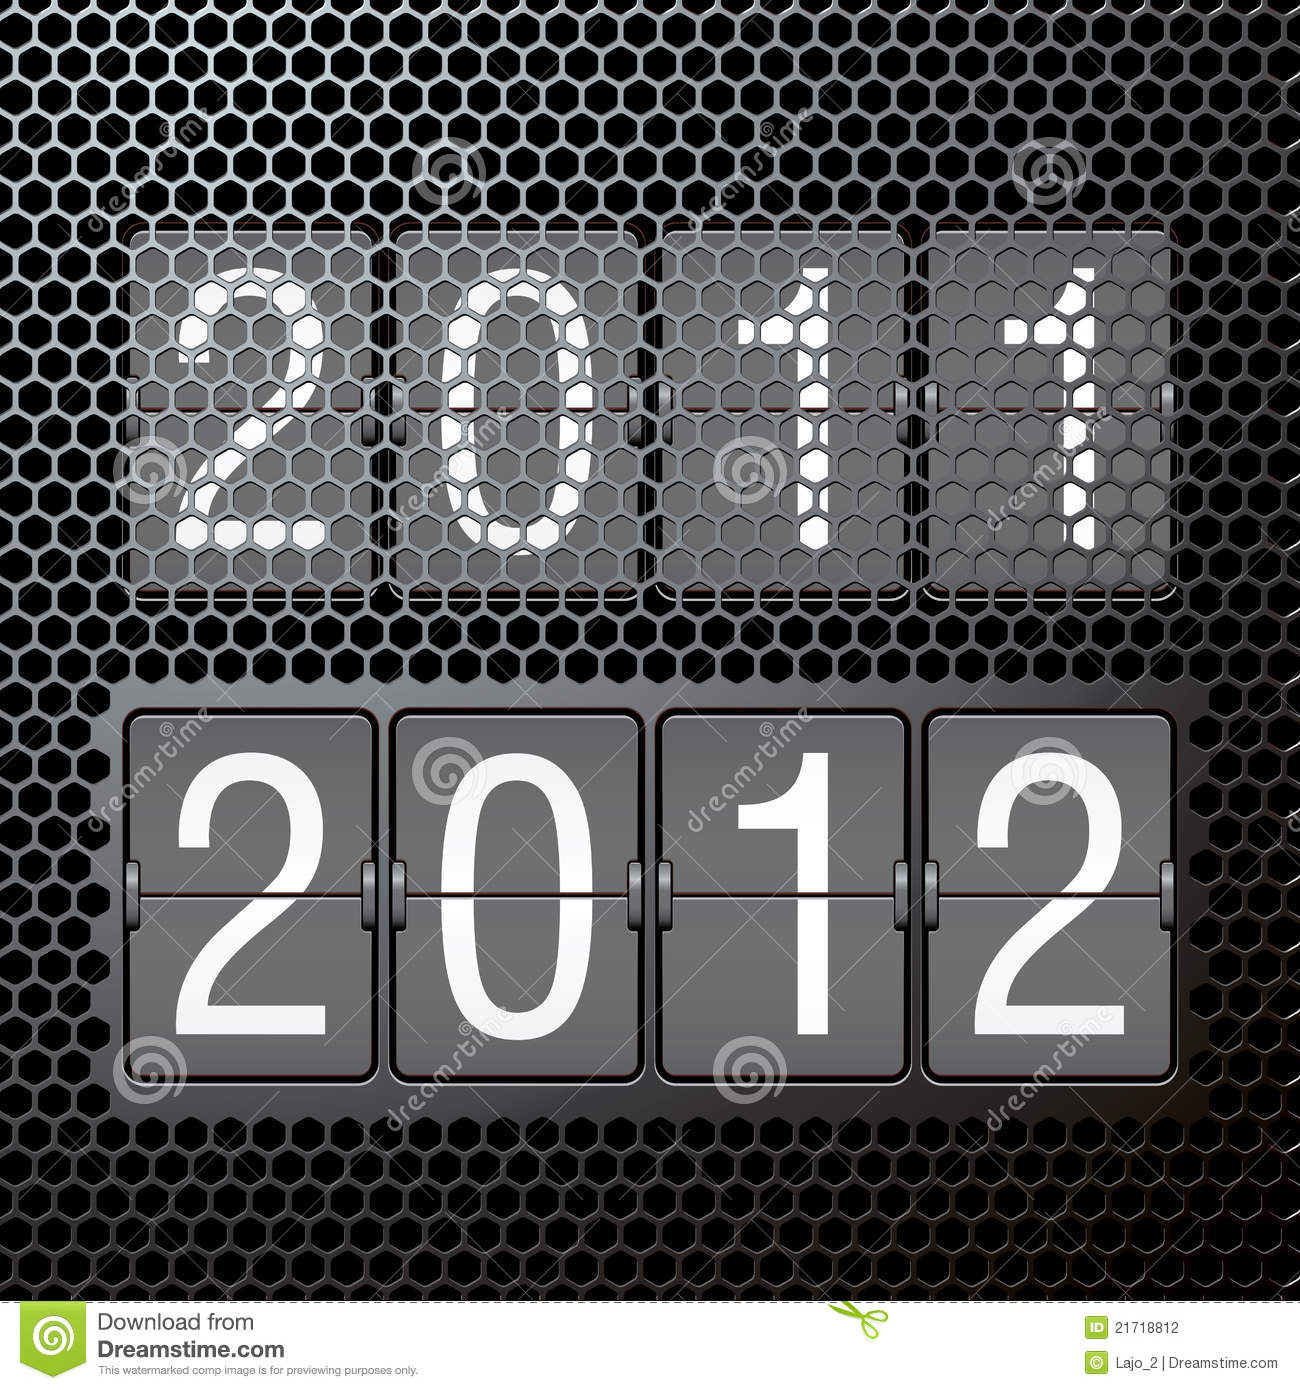 2012 new year on mechanical scoreboard